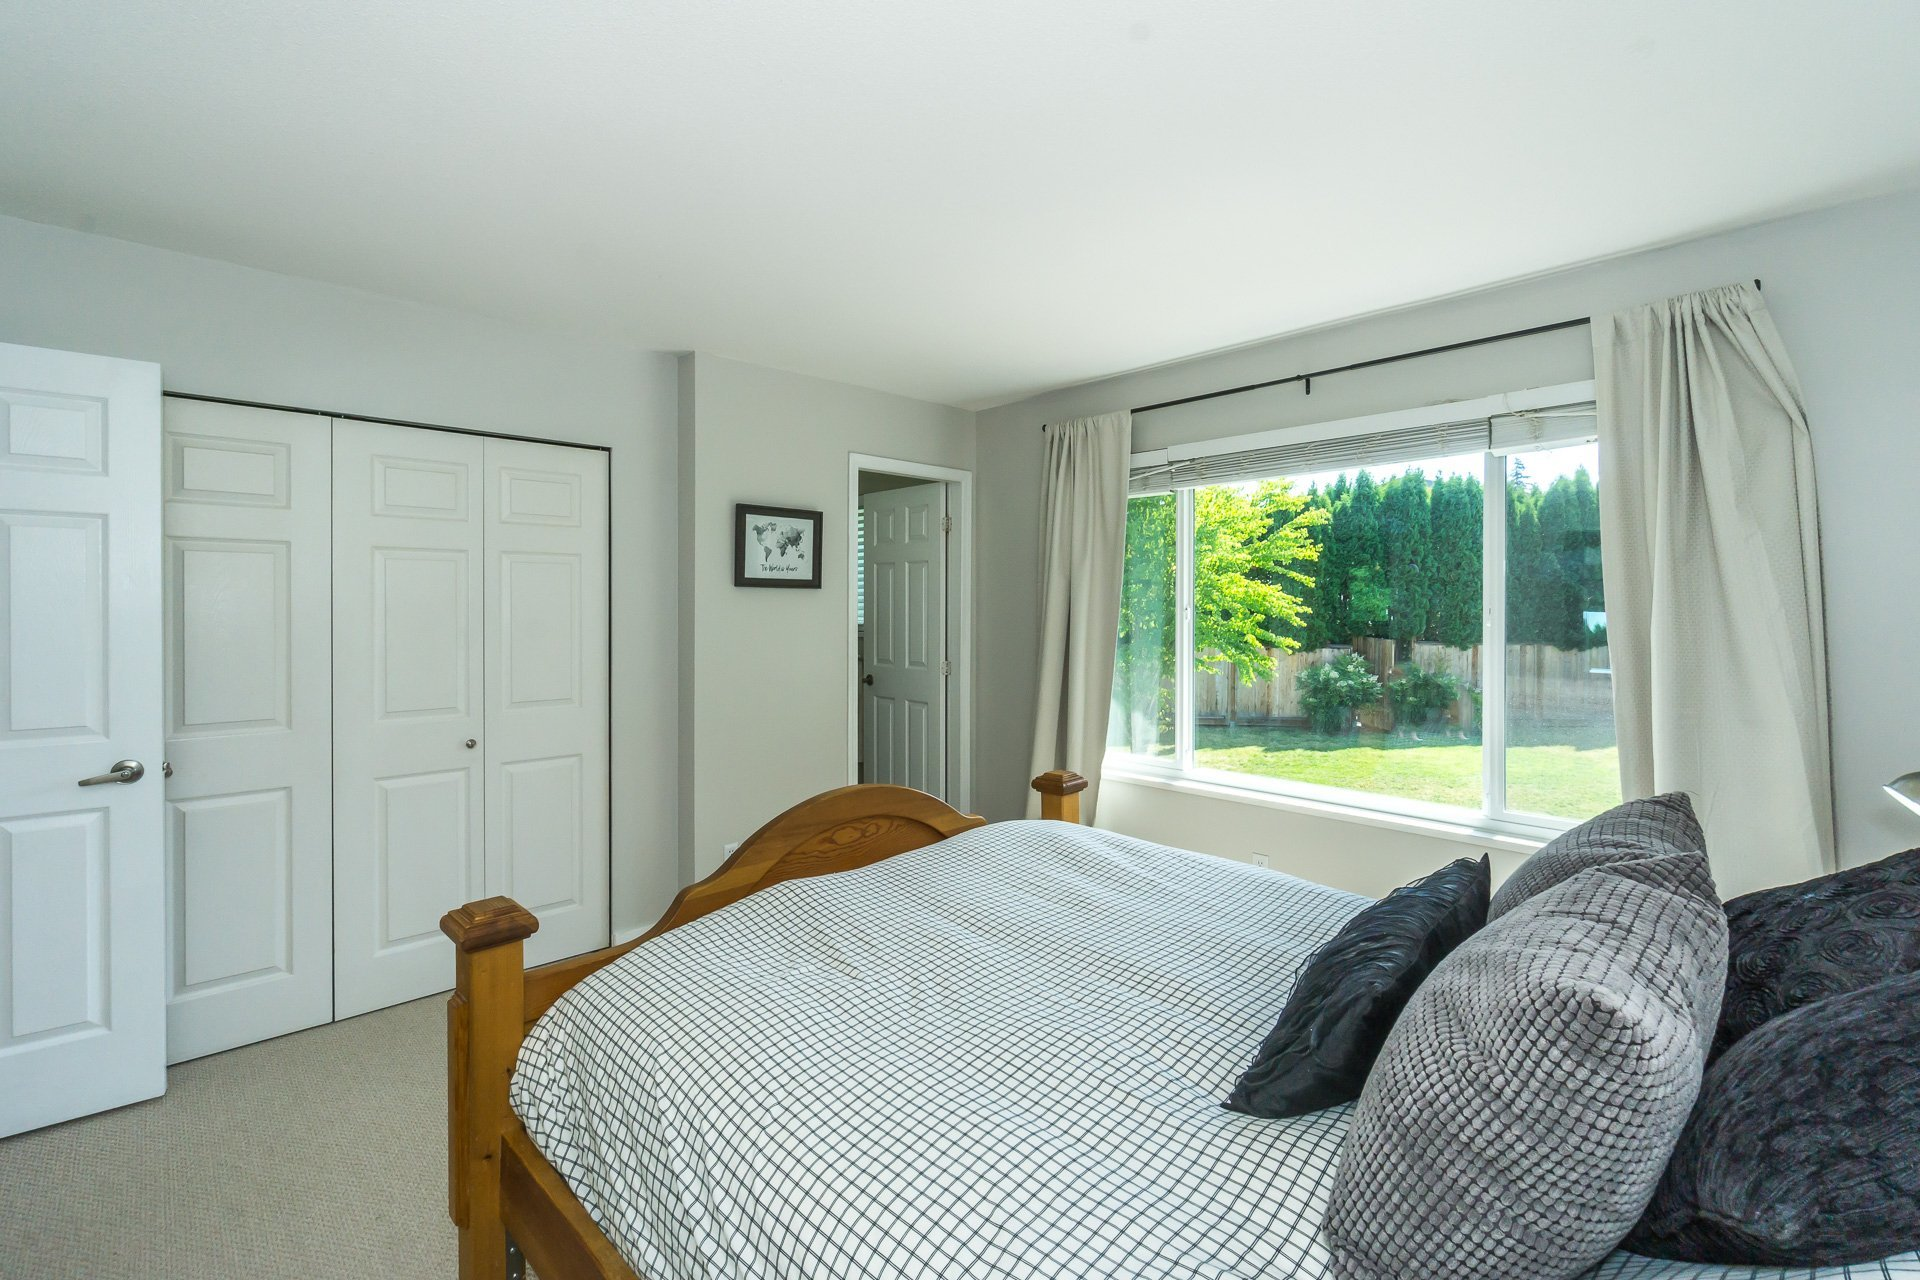 Master Bedroom looking towards Ensuite and Closet (check out the view of the backyard) at 21662 50a Avenue, Murrayville, Langley